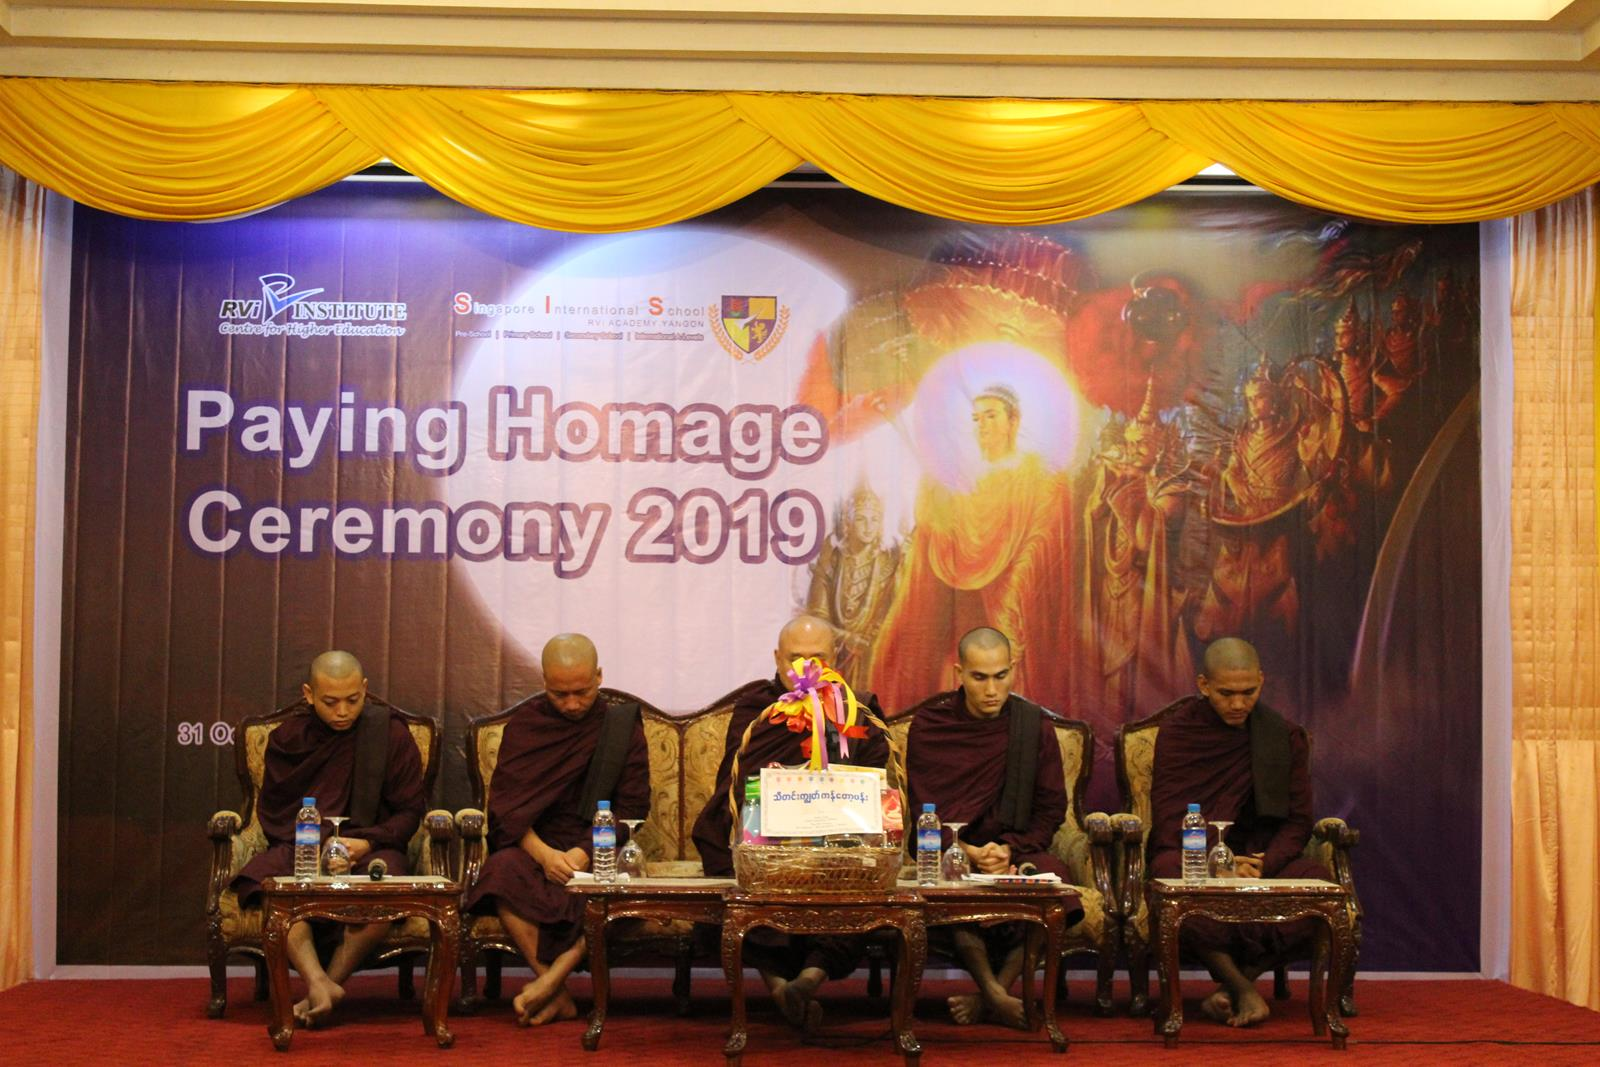 RVi Paying Homage Ceremony (31 October 2019)